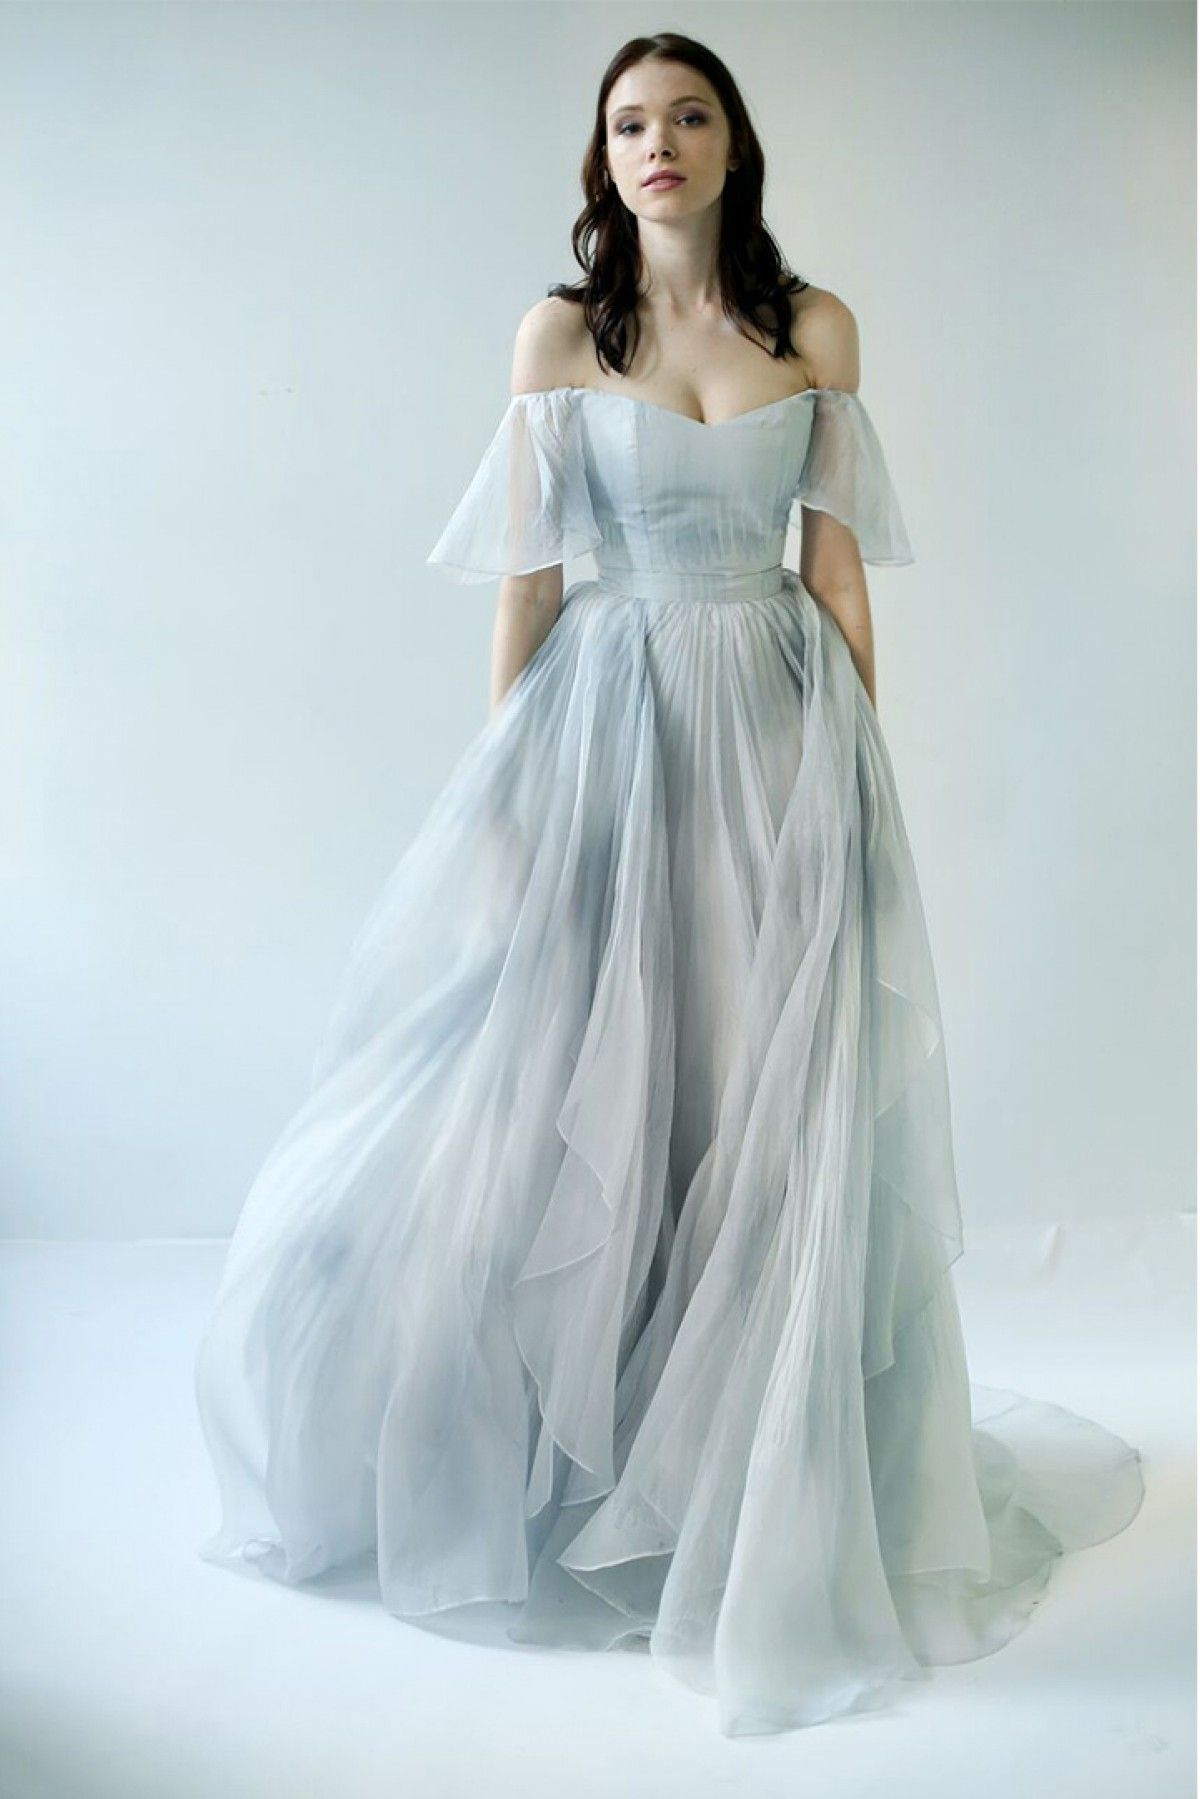 Youdesign Organza Gown In Sky Blue Colour | Compliments, Feminine ...